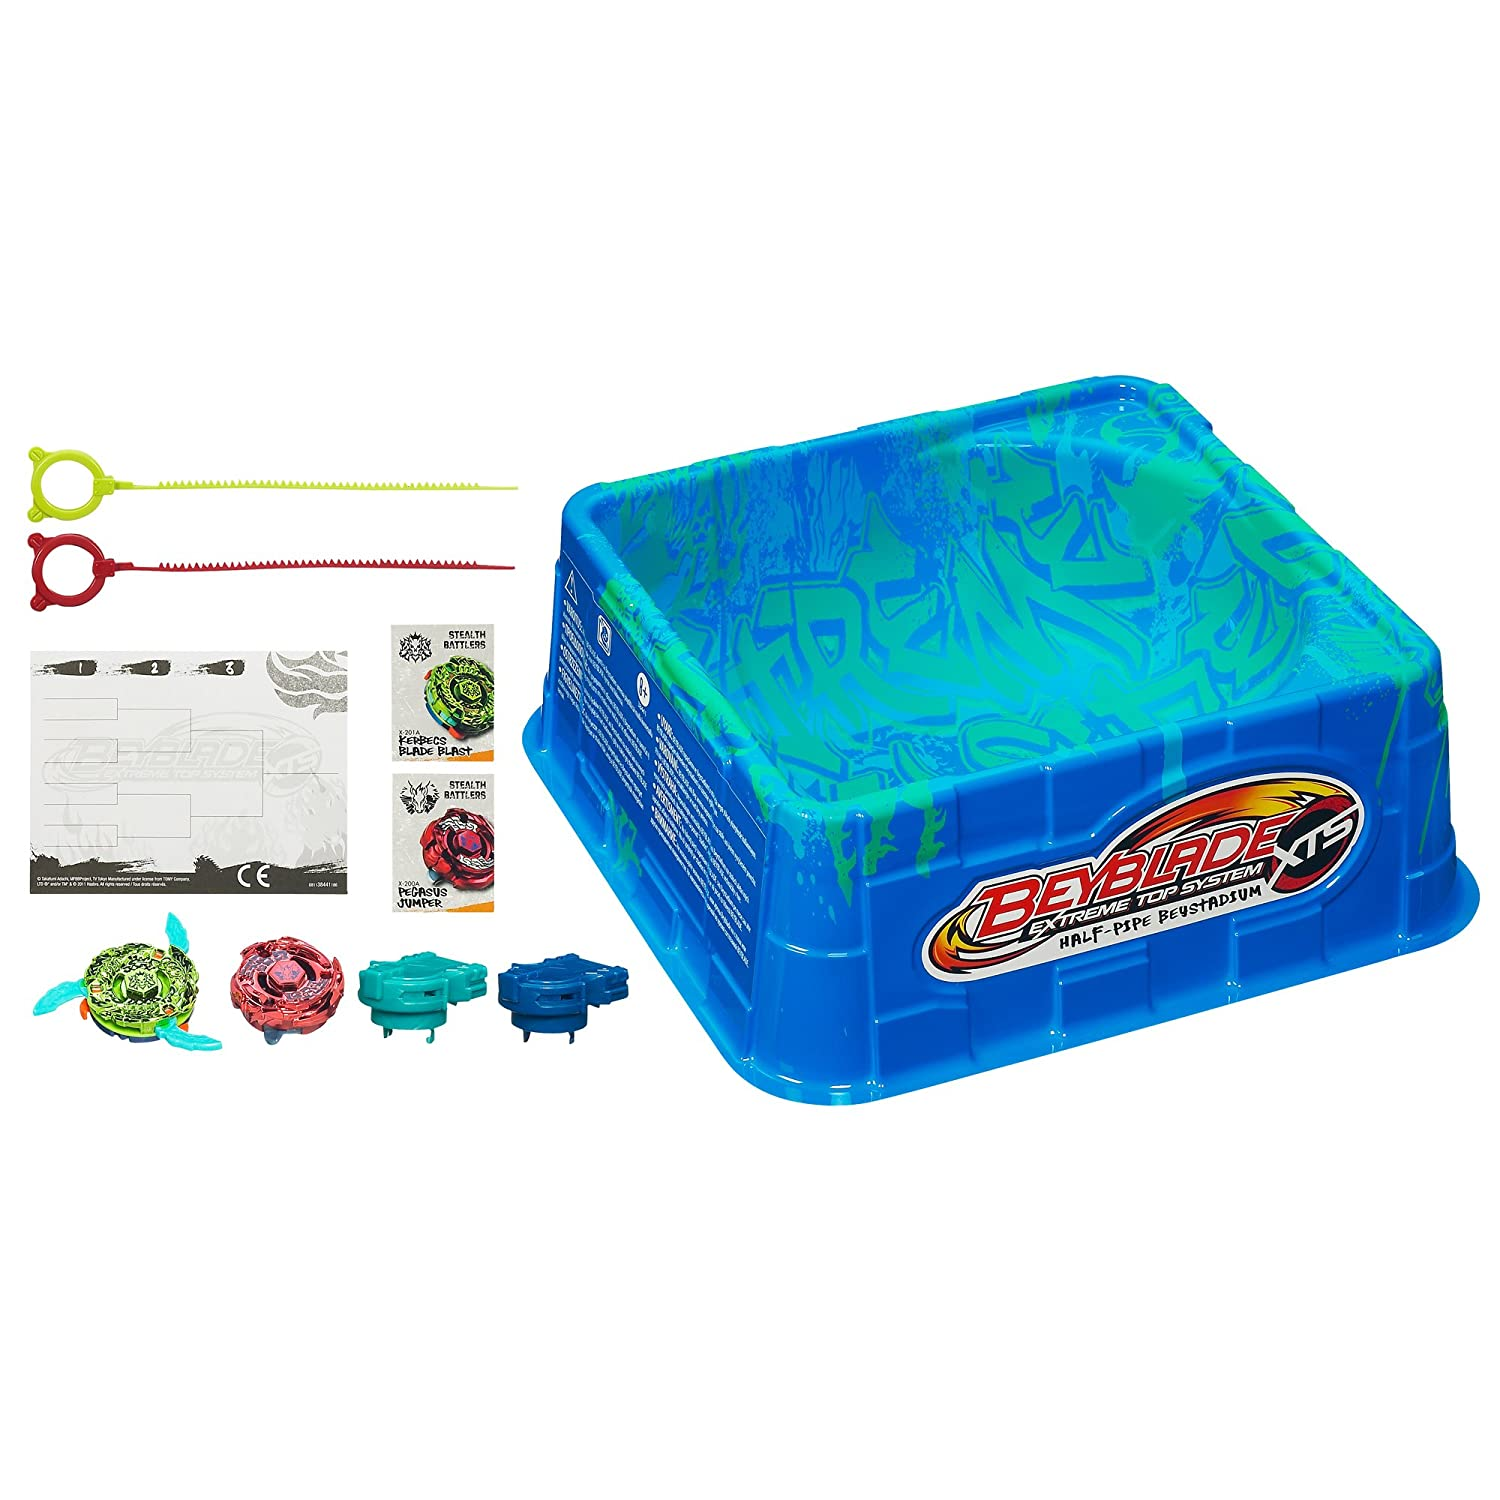 BEYBLADE XTS Half Pipe Battle Set 38441